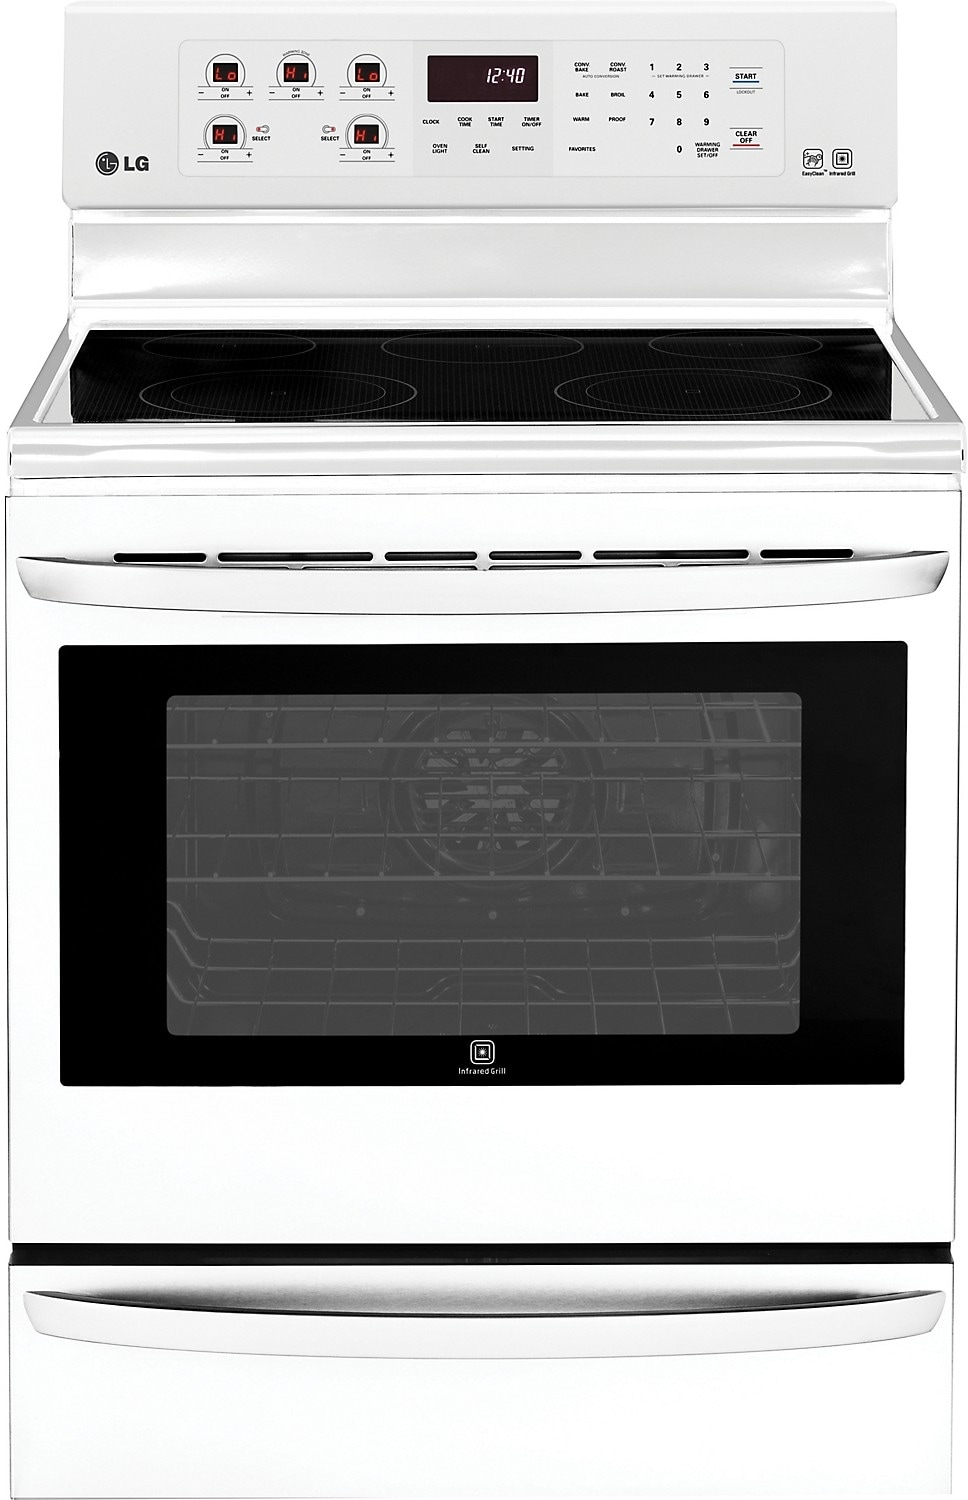 Cooking Products - LG 6.3 Cu. Ft. Freestanding Electric Range with Infrared Grill - White